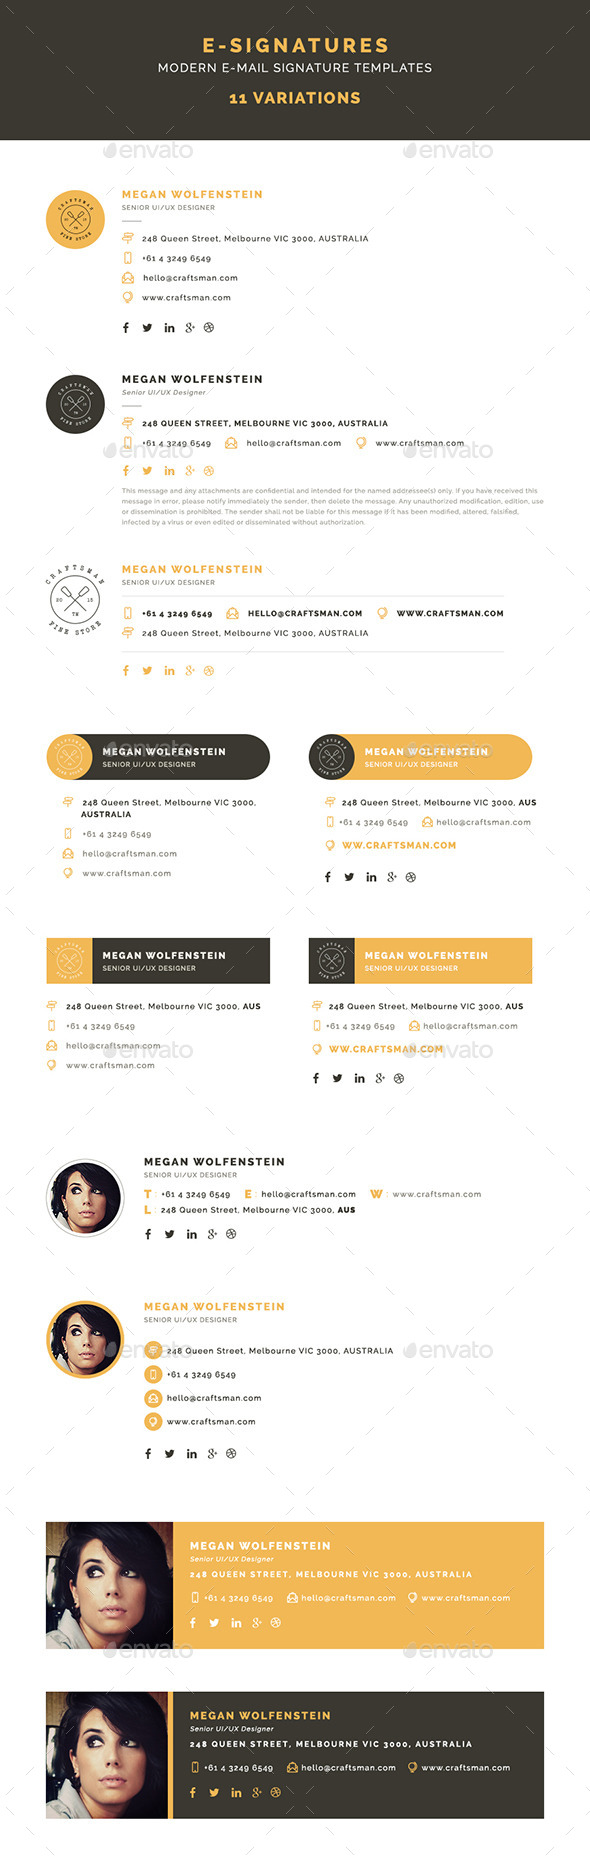 GraphicRiver E-Signatures Modern E-mail Signature Templates 10199109